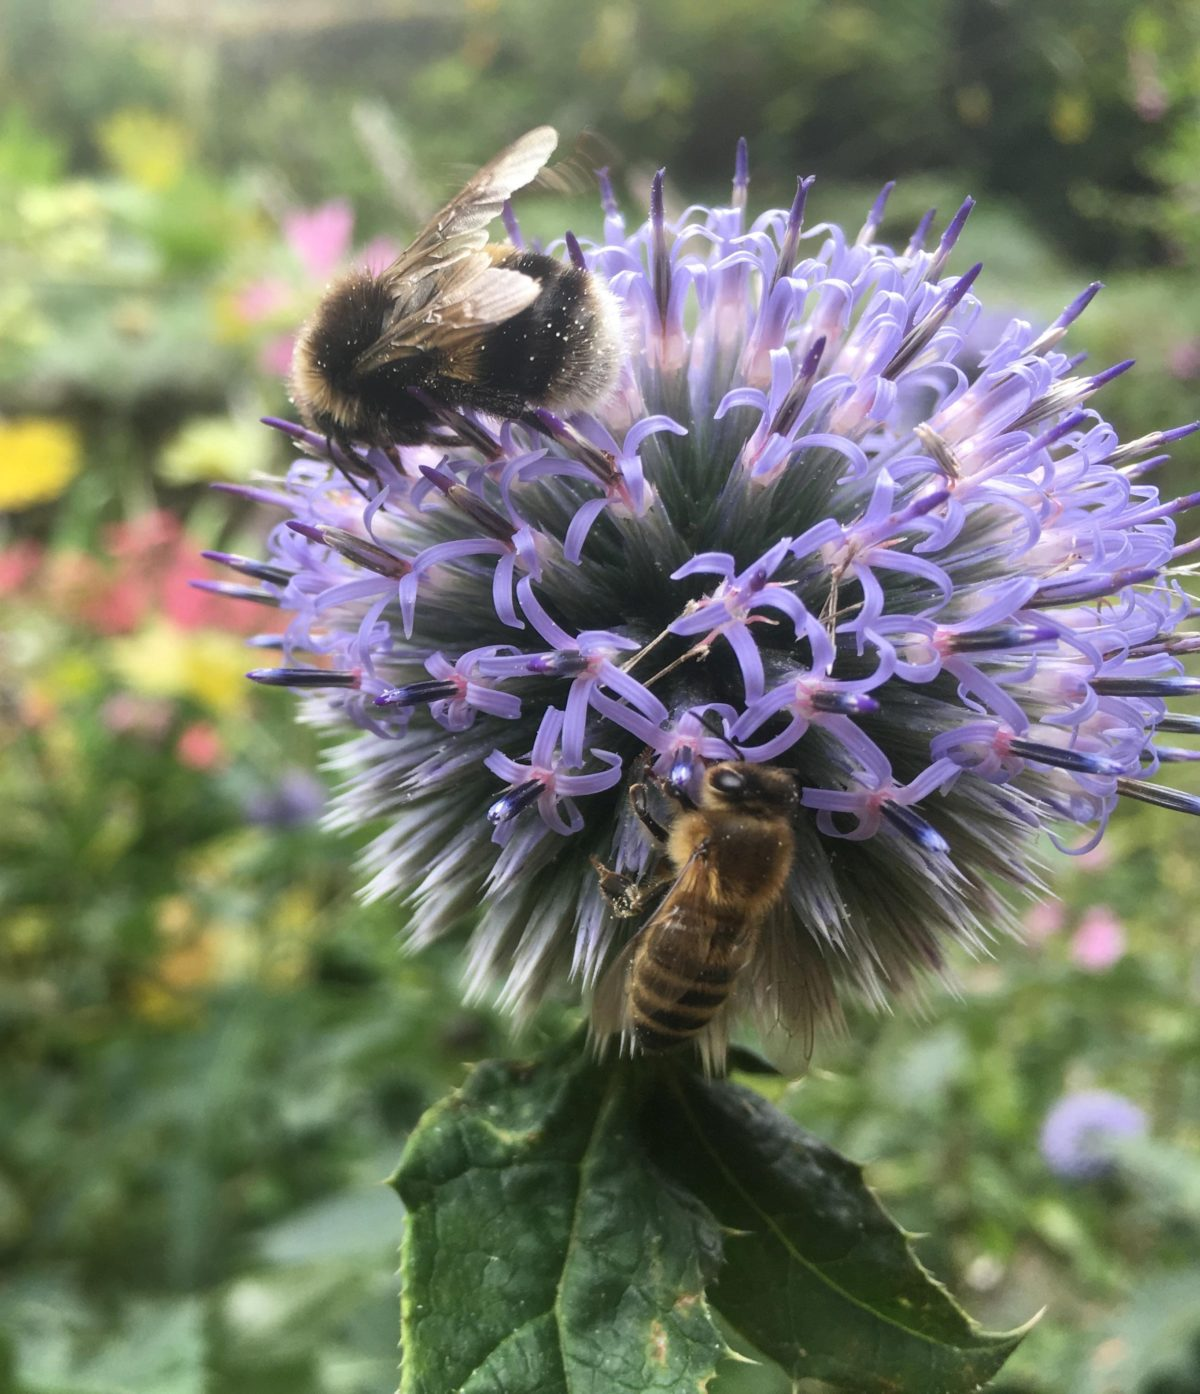 Busy bees in a Garden for Wellbeing